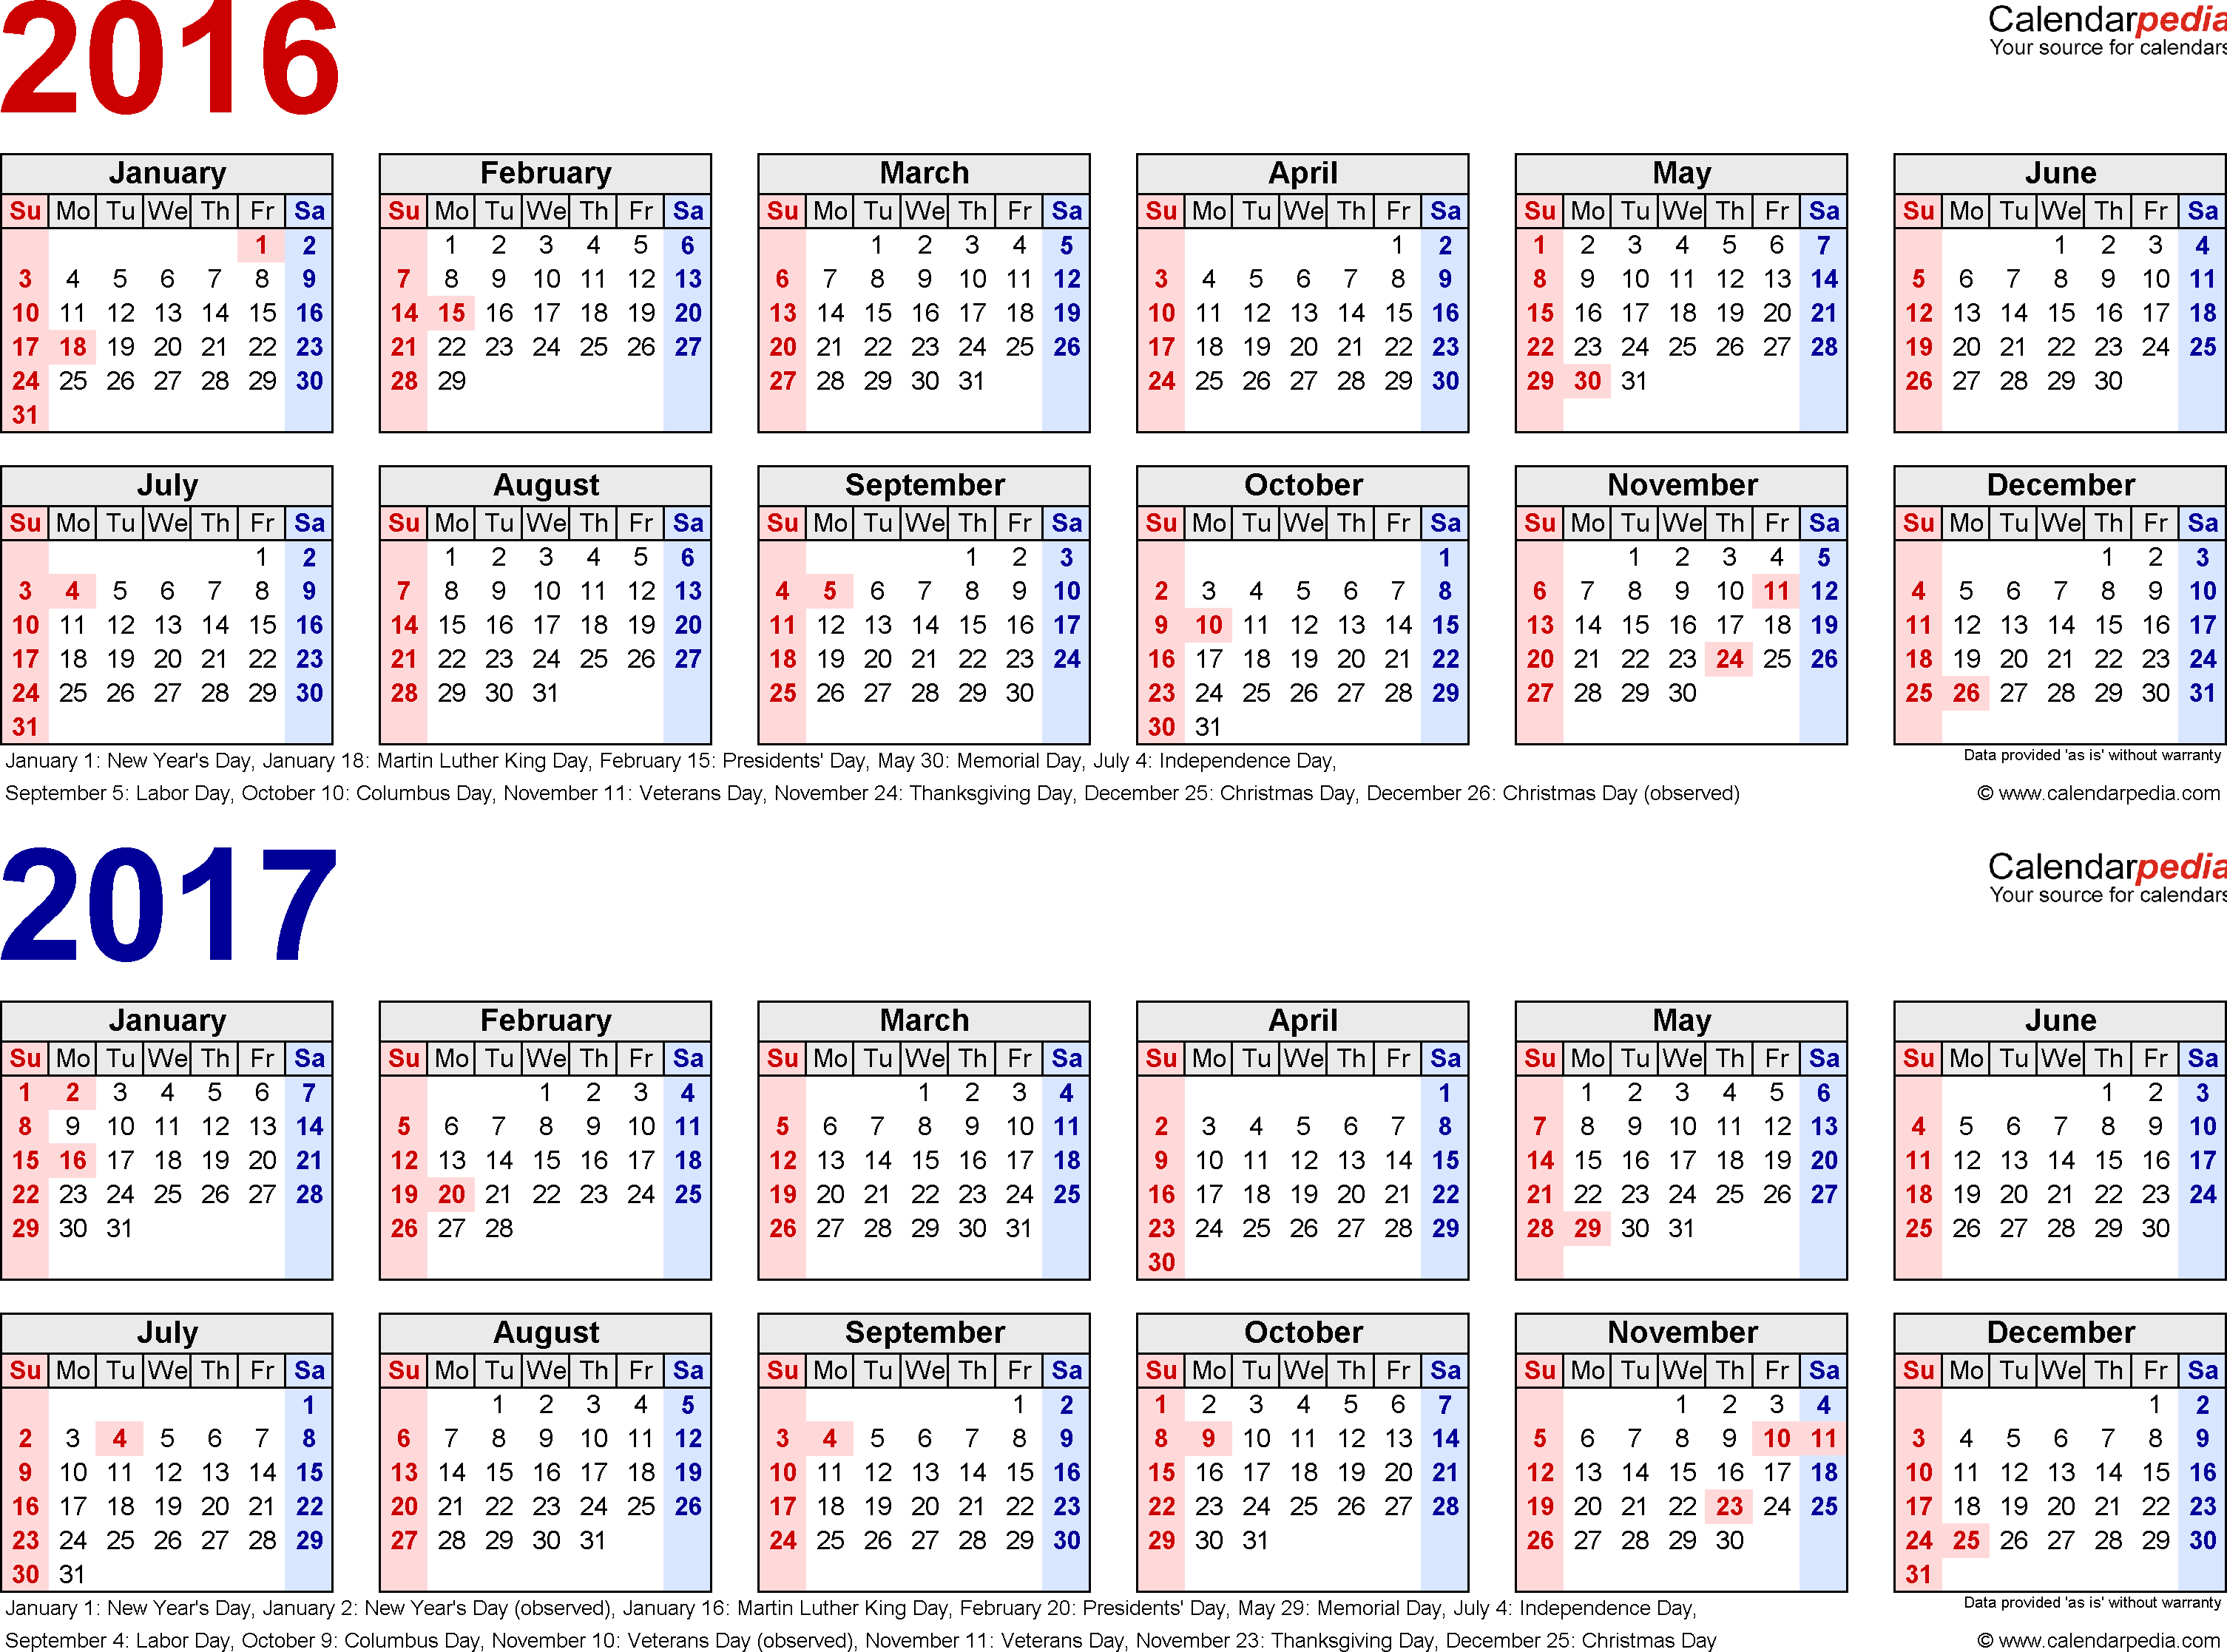 Template 1: Word template for two year calendar 2016/2017 (landscape orientation, 1 page, in red and blue)